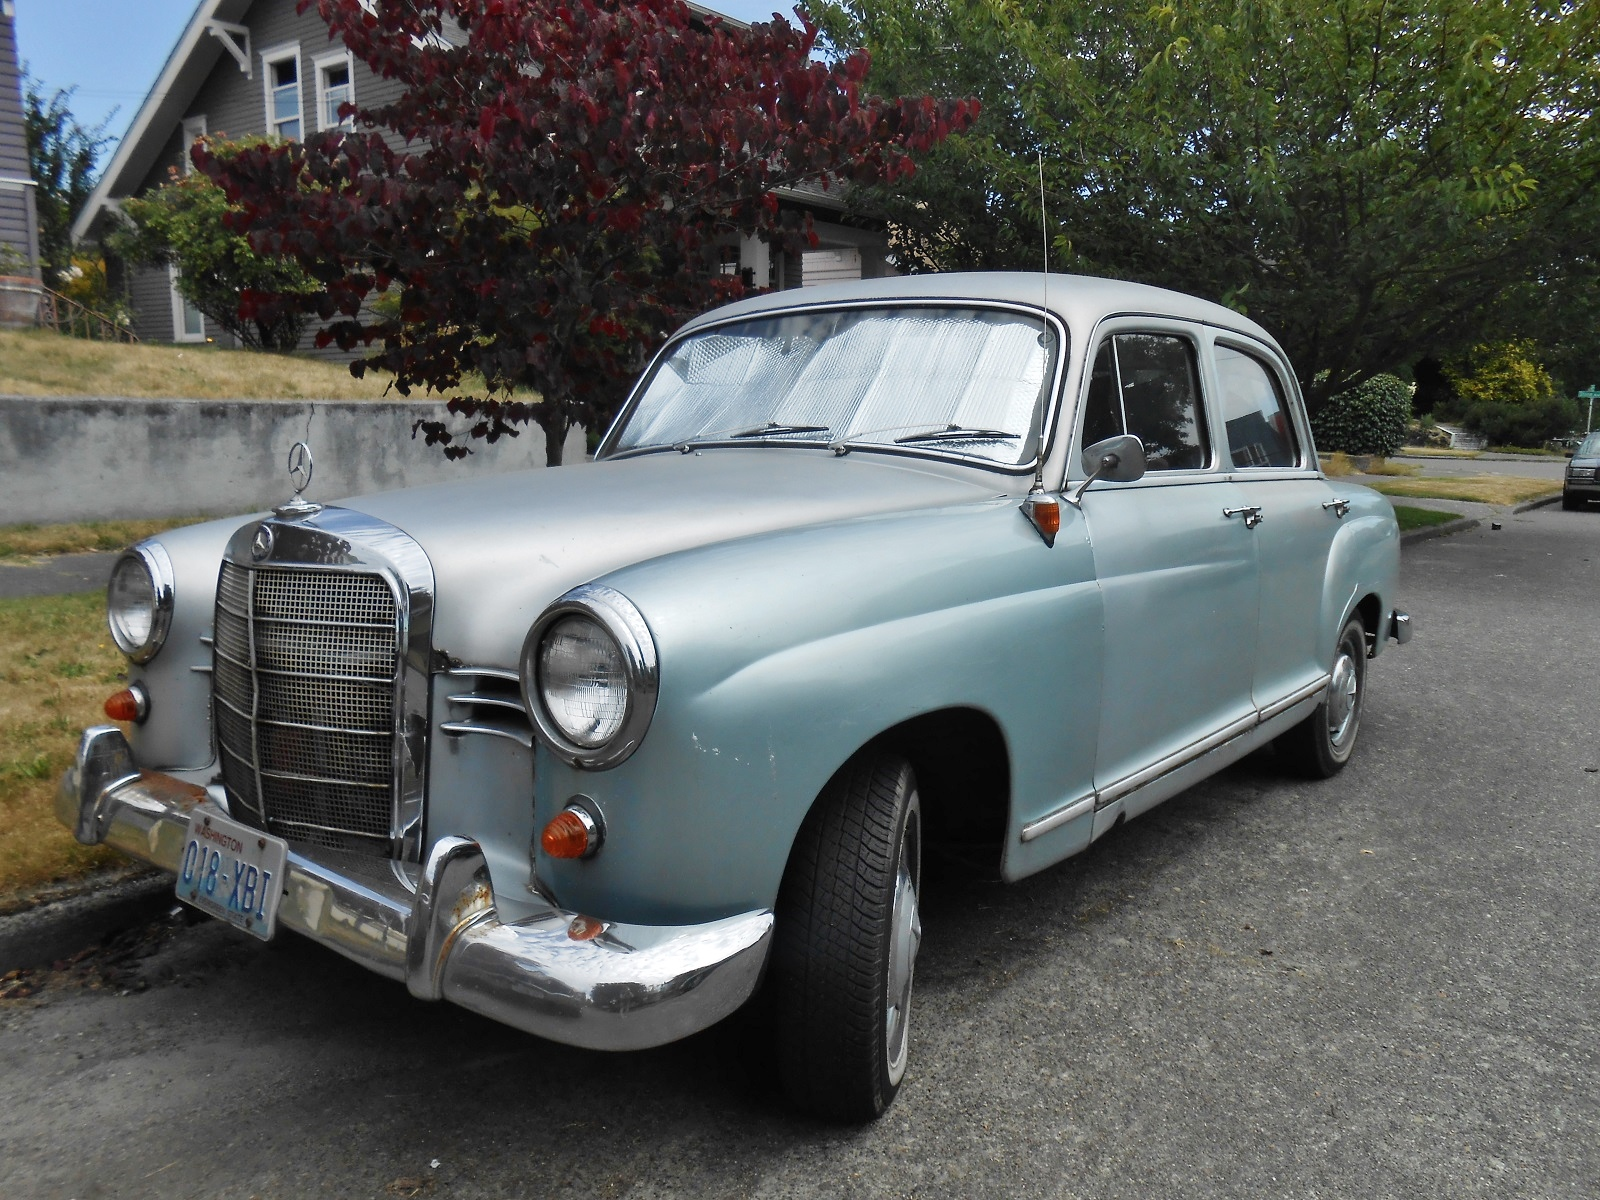 Seattle 39 s parked cars 1960 mercedes 190d for 1960 mercedes benz